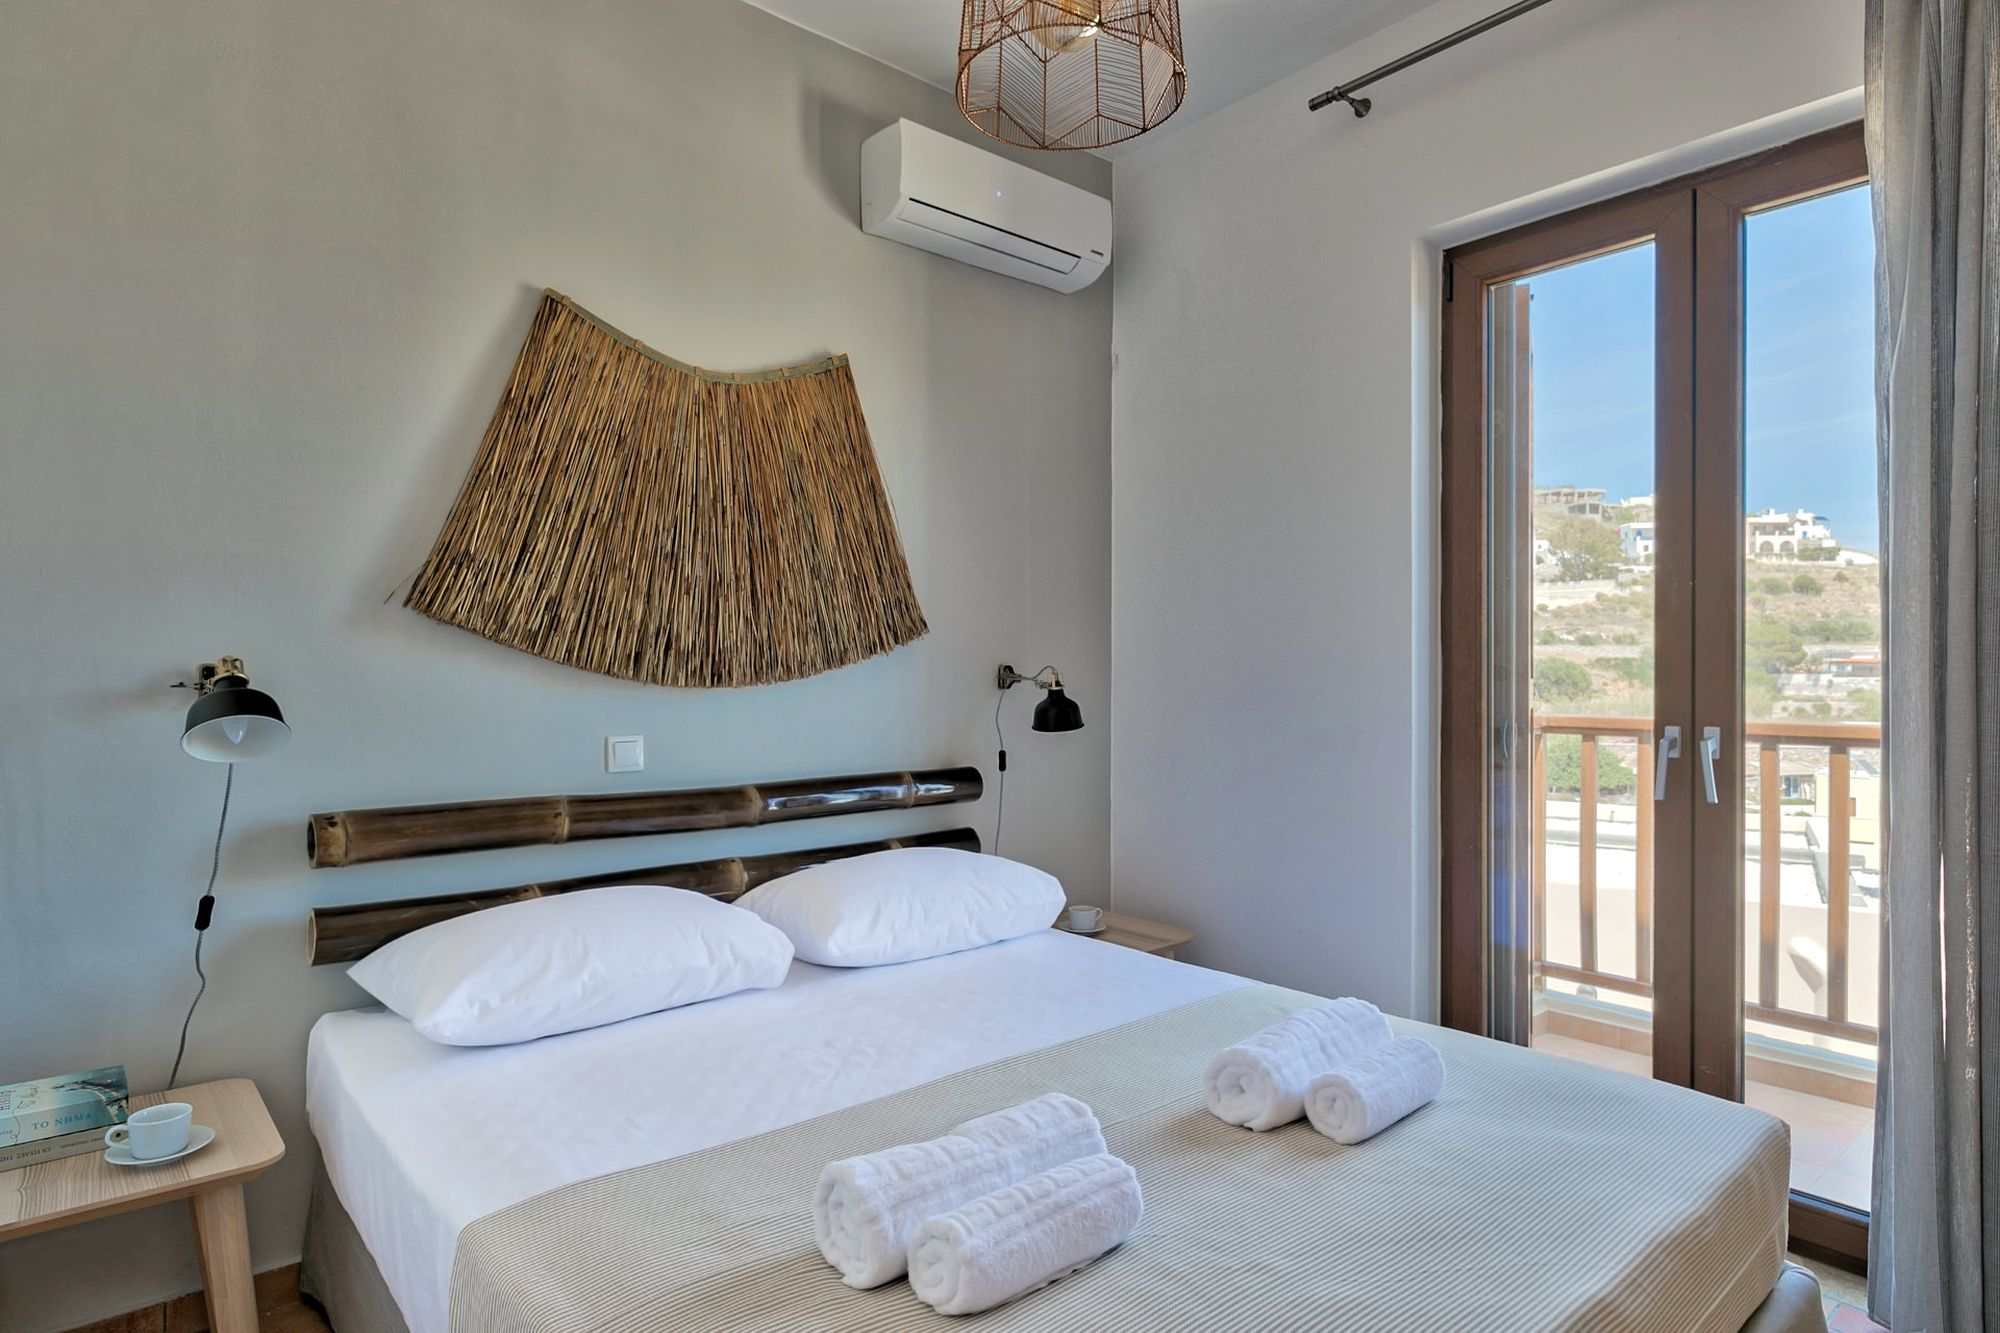 Air-conditioned bedroom with double bed, black wall lights, wooden bed side tables, a big wall wicker deco element and wooden bamboo masts over the bed.